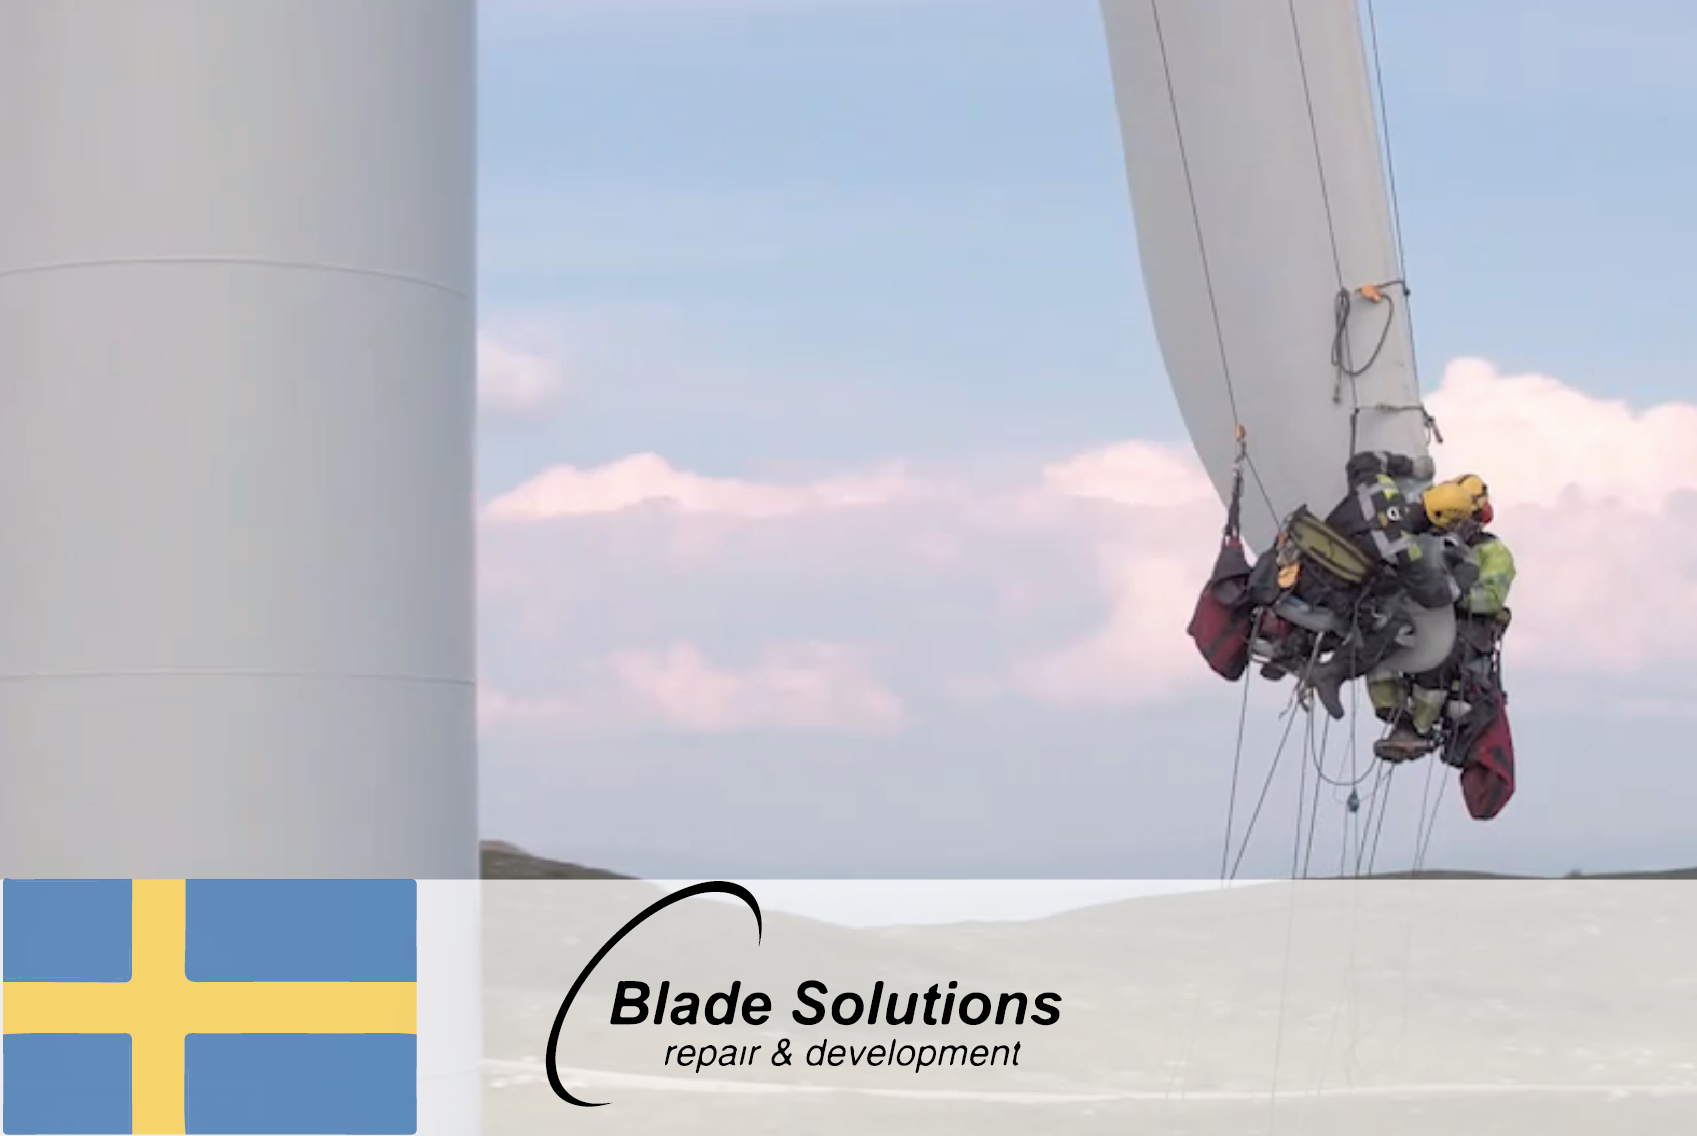 #63 Blade Solutions - prolong the lifetime of wind turbines - CIRCit Nord